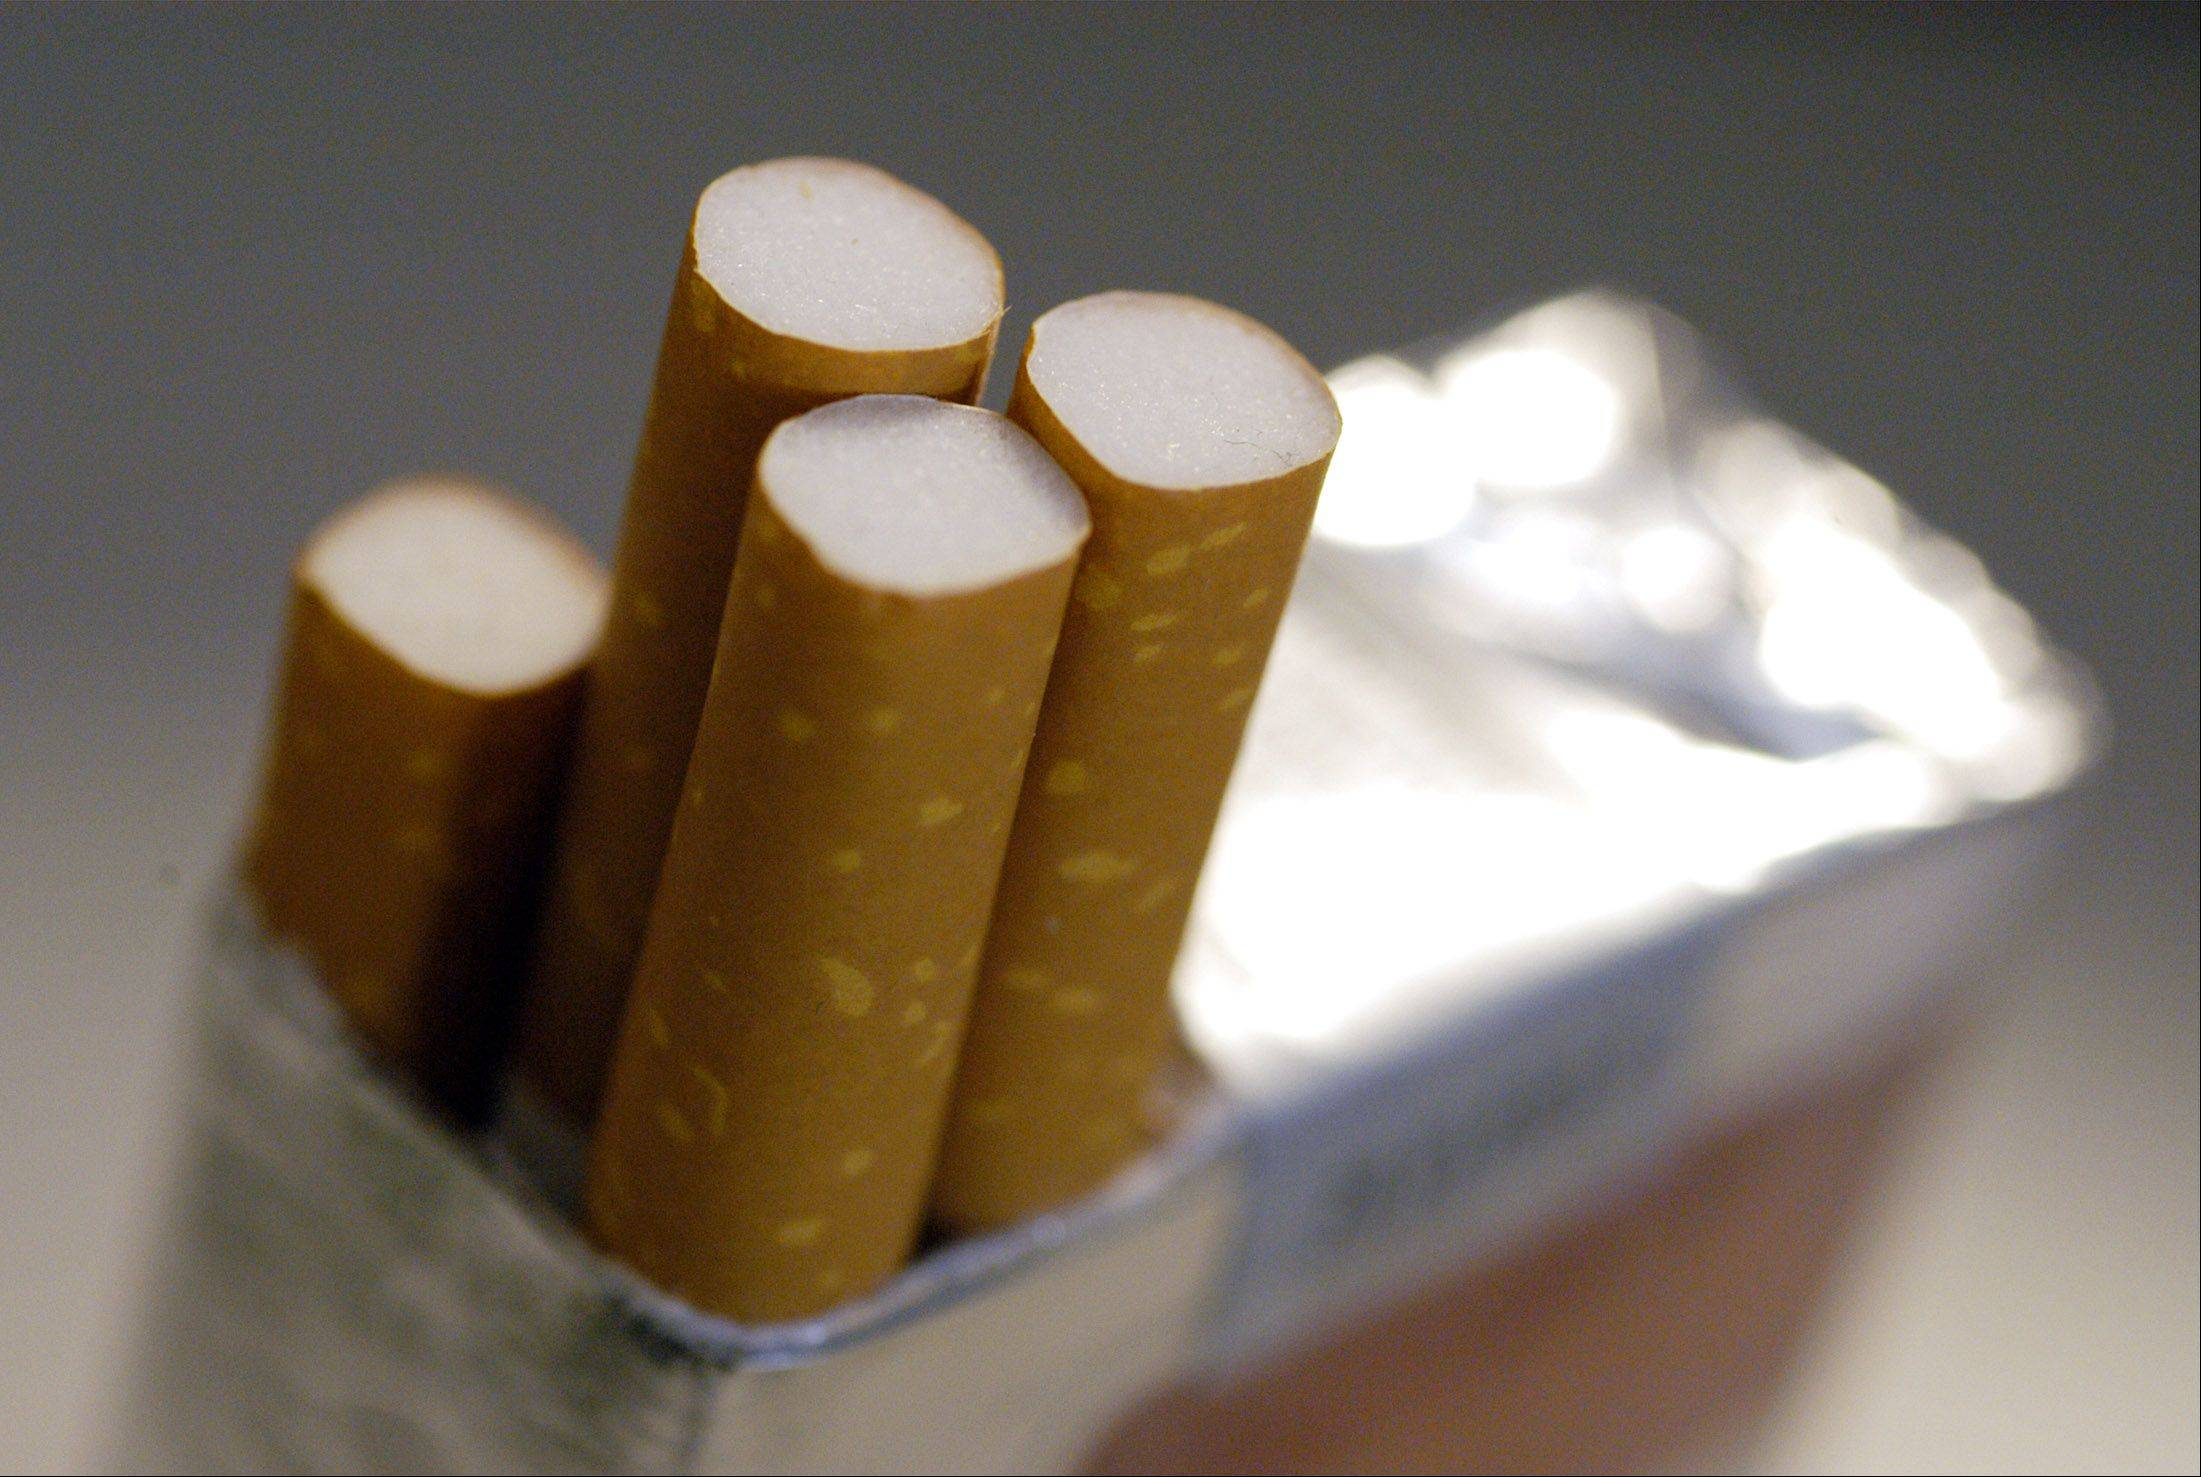 State officials say Illinois' cigarette tax revenue more than doubled in July compared to the same period last year.